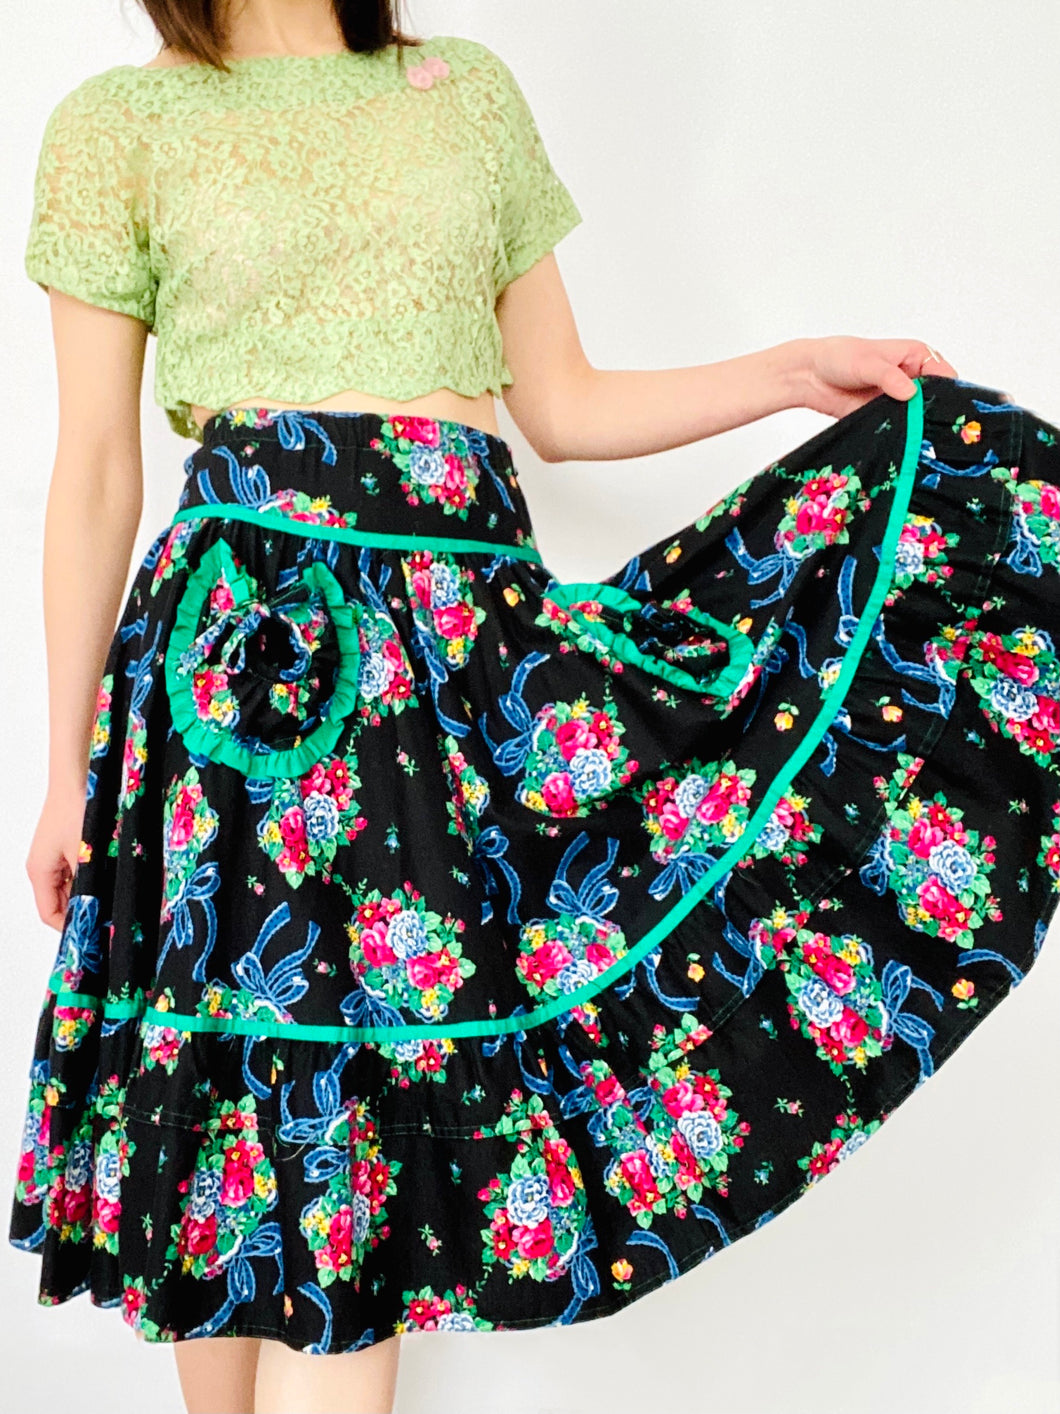 Vintage 1950s Novelty Print Floral Skirt with Heart Shaped Pockets